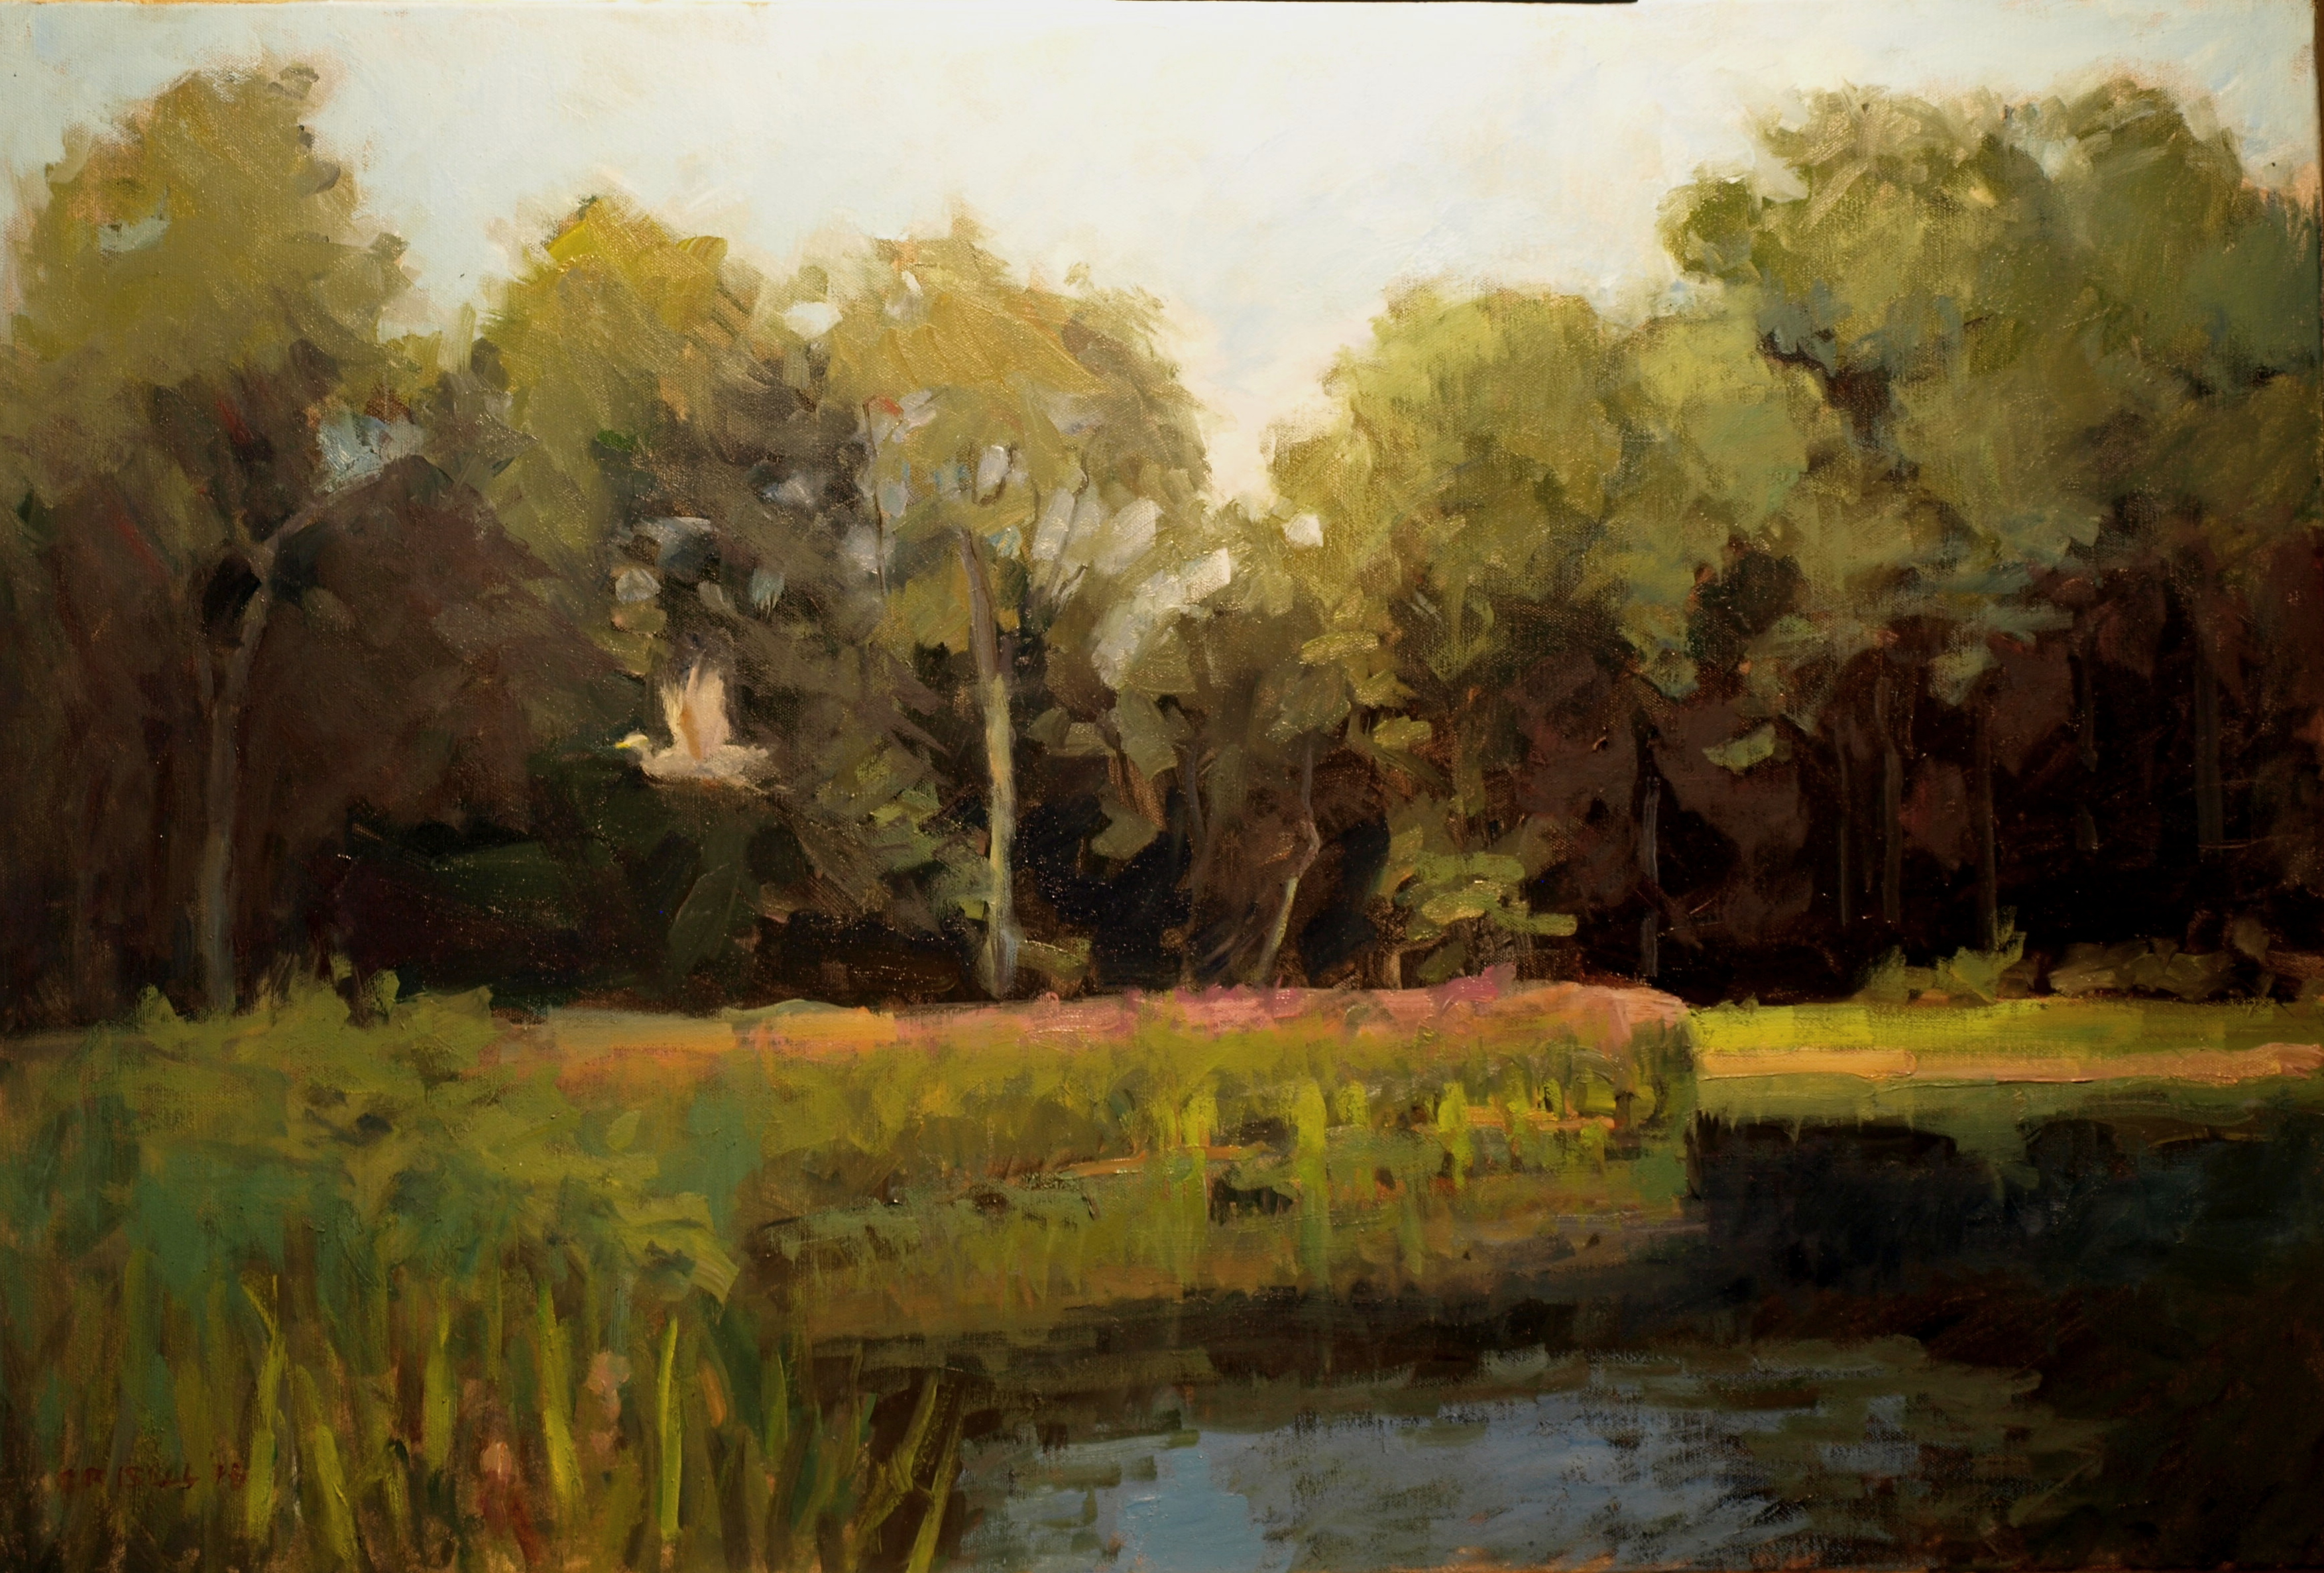 Canal at Bulls Bridge, Oil on Canvas, 24 x 36 Inches, by Susan Grisell, $1500